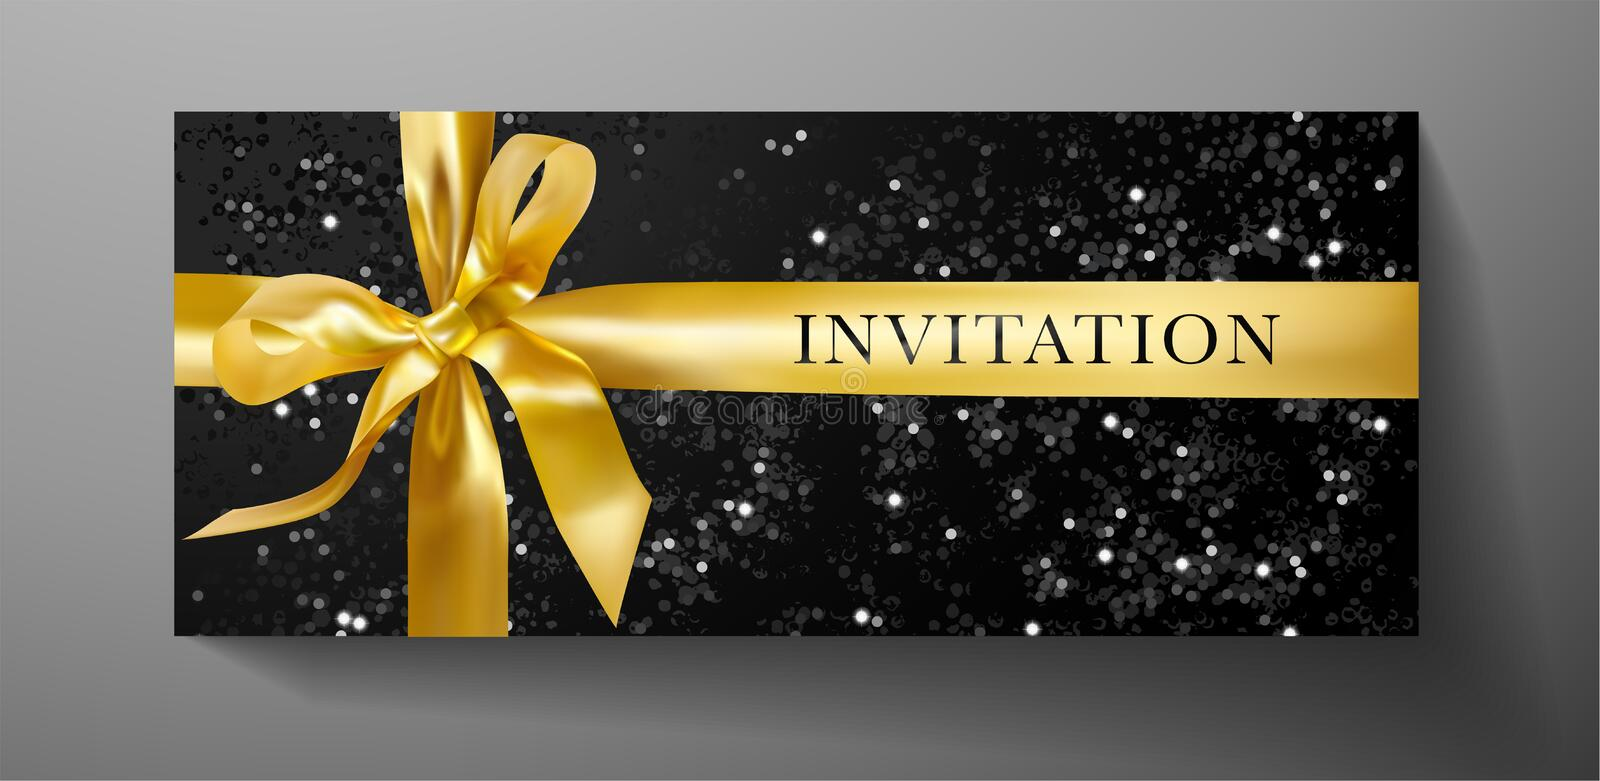 Invitation, Gift certificate or Voucher template with luxurious gold bow, ribbon on black textured background 向量例证